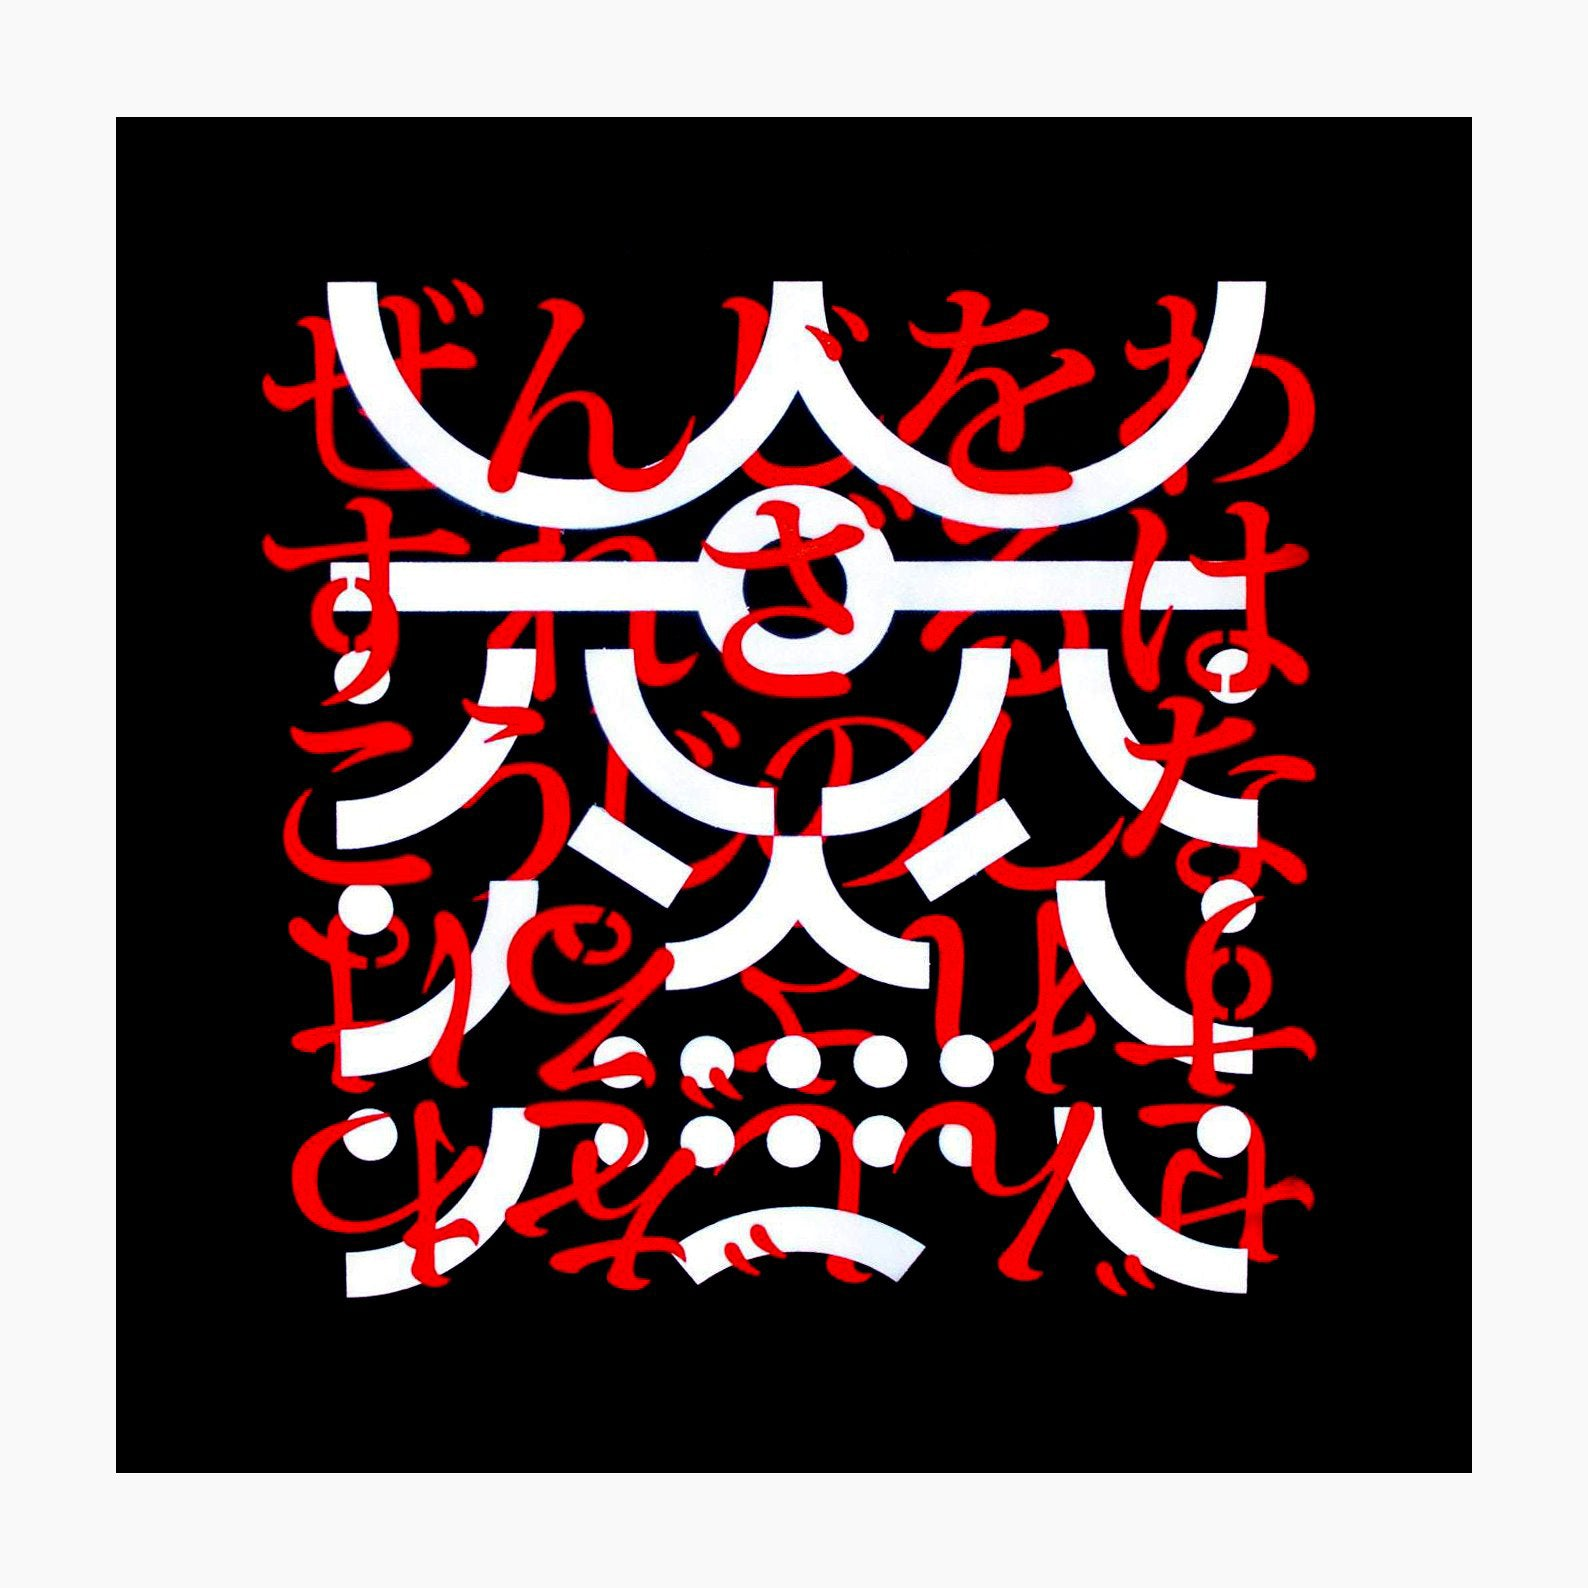 Demons Of Orient III Limited Edition Gouache on Cardboard Stencil Art - bkzcreative